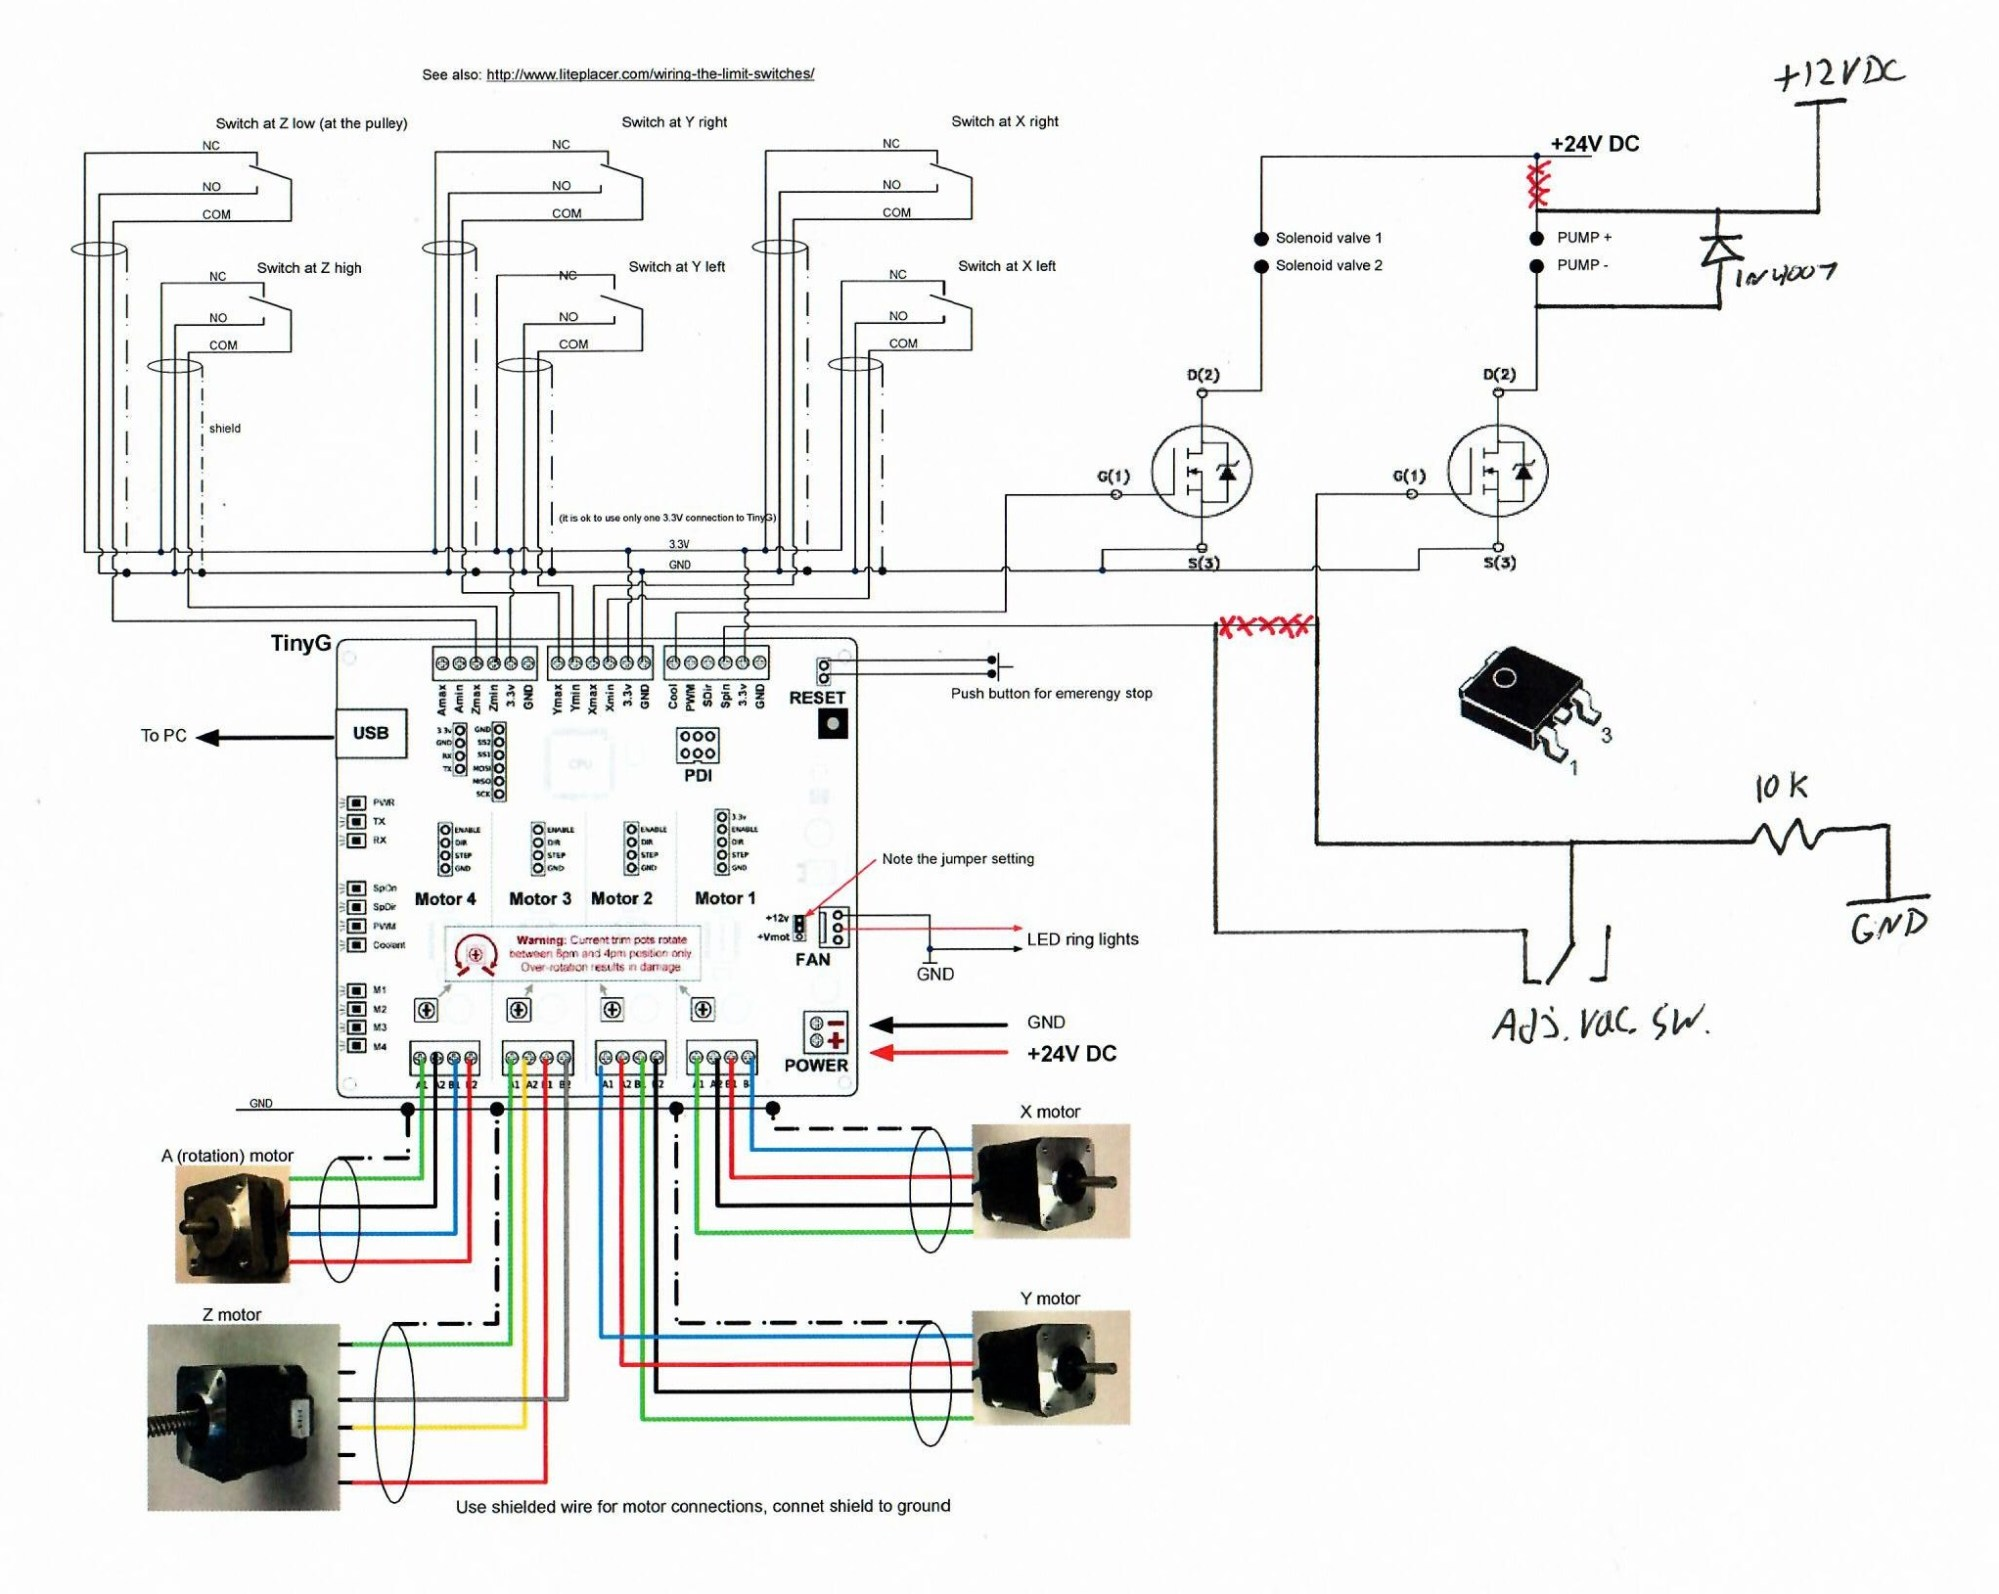 hight resolution of the vacuum configuration i m going to run will include a reservoir and an adjustable vacuum switch to power the pump only when needed